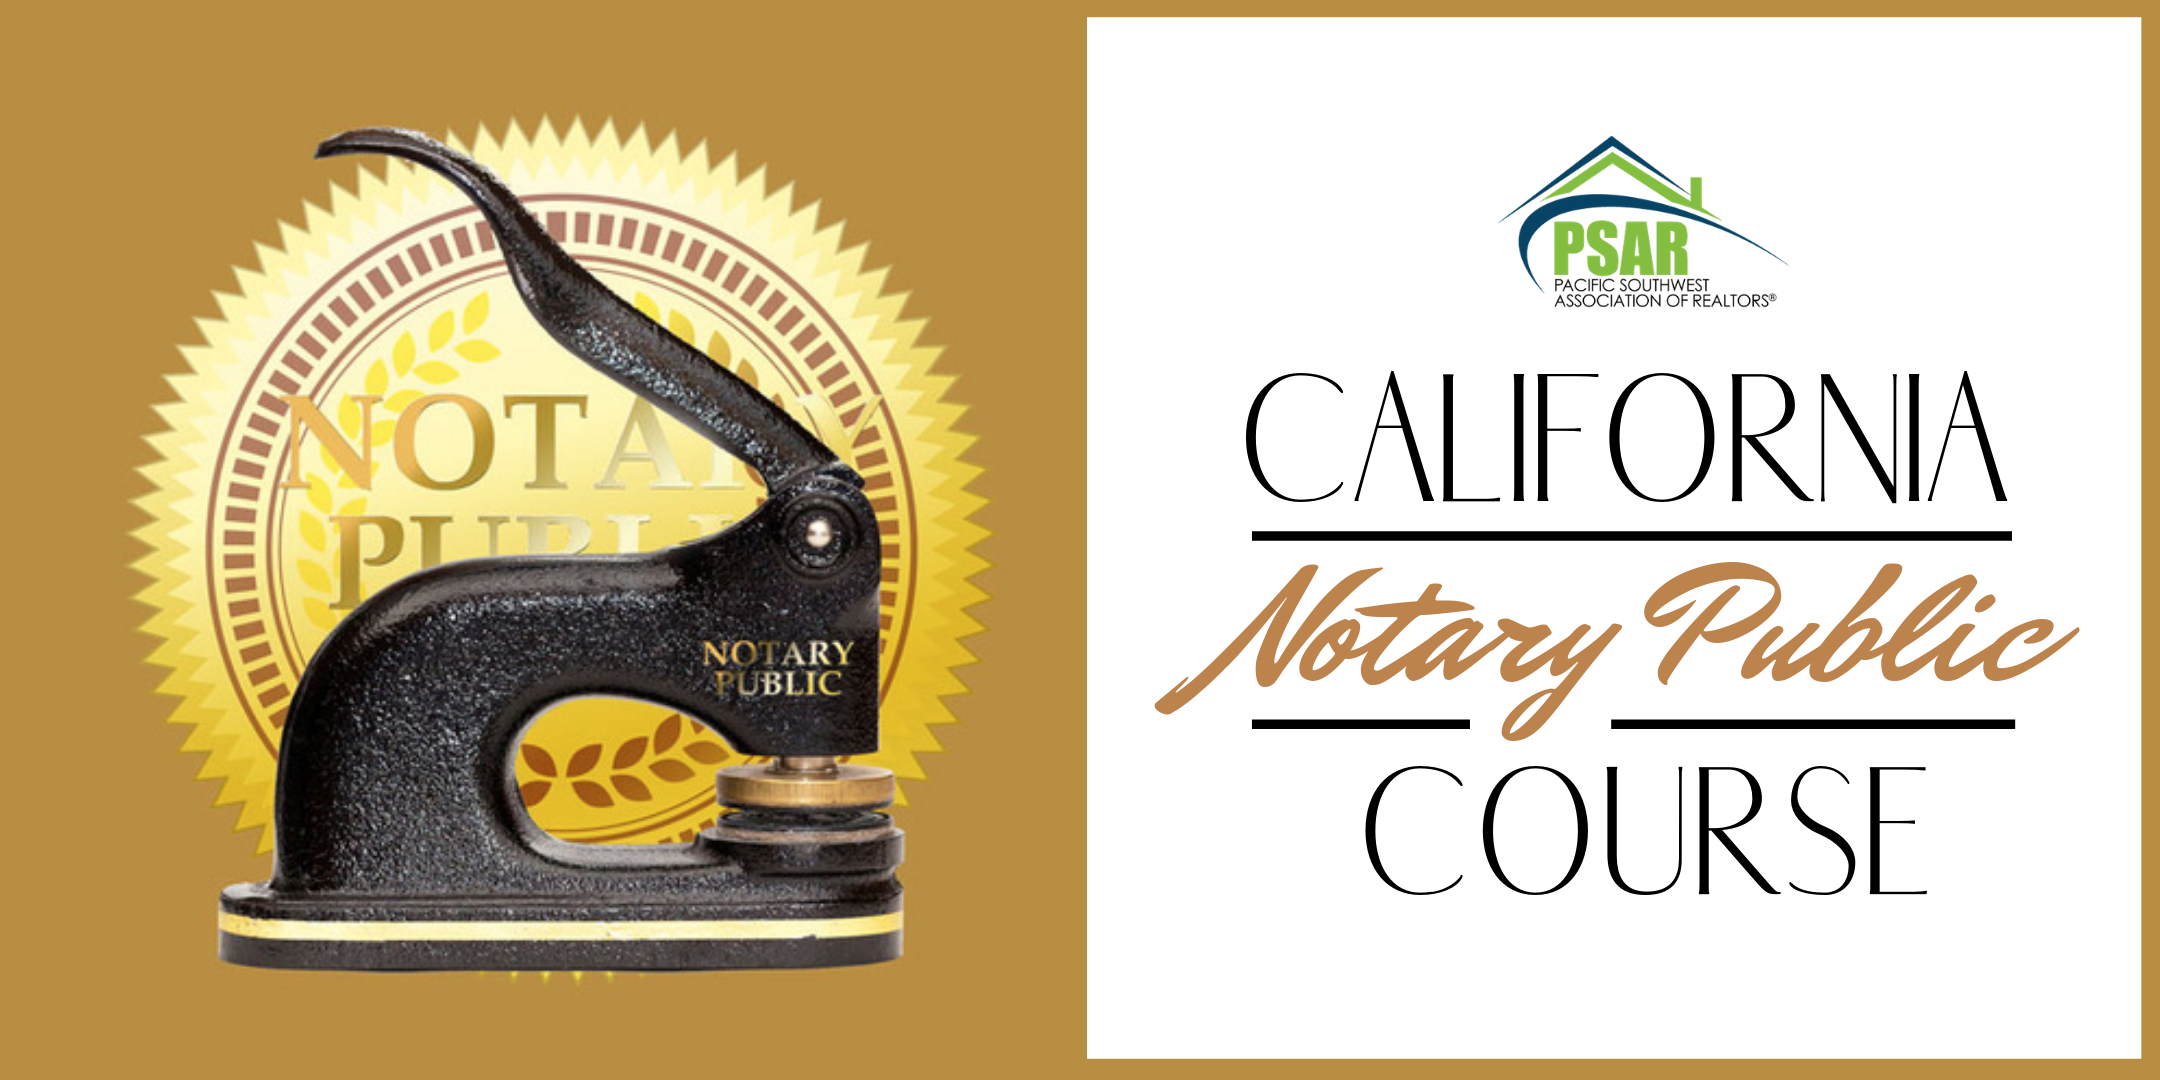 California Notary Public Course